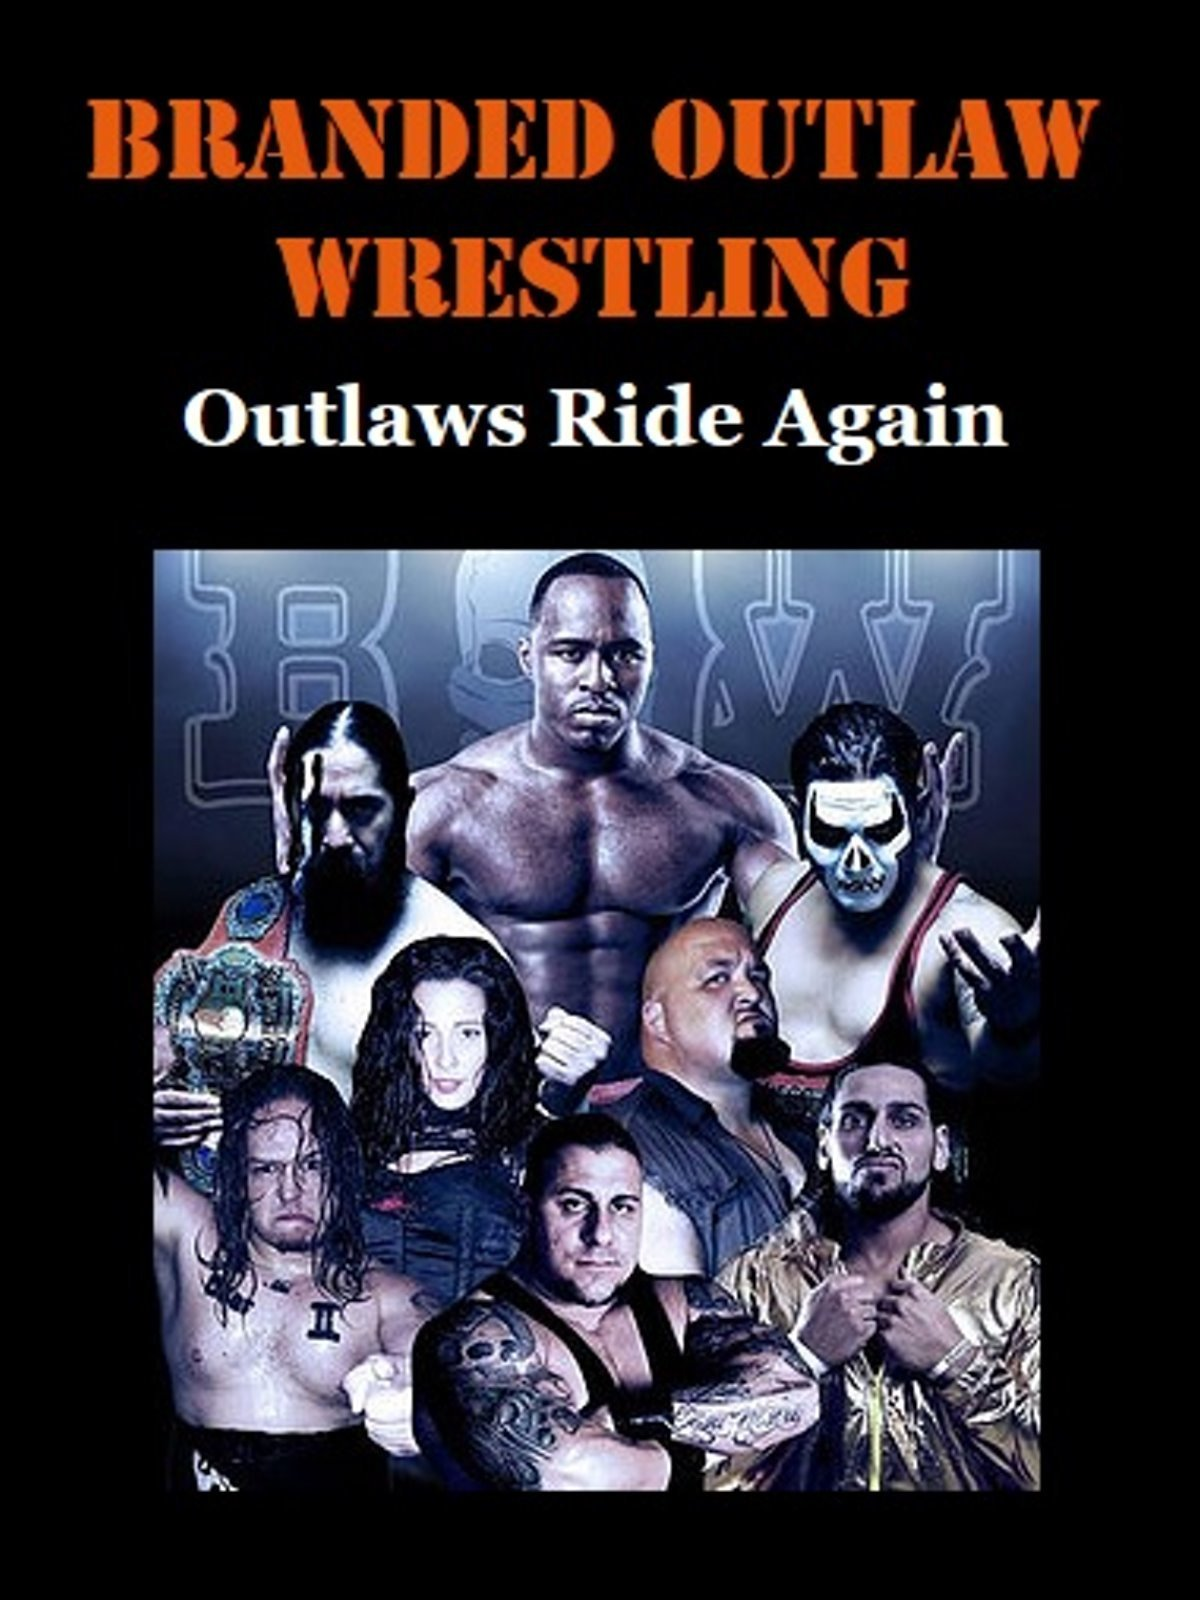 Branded Outlaw Wrestling: Outlaws Ride Again